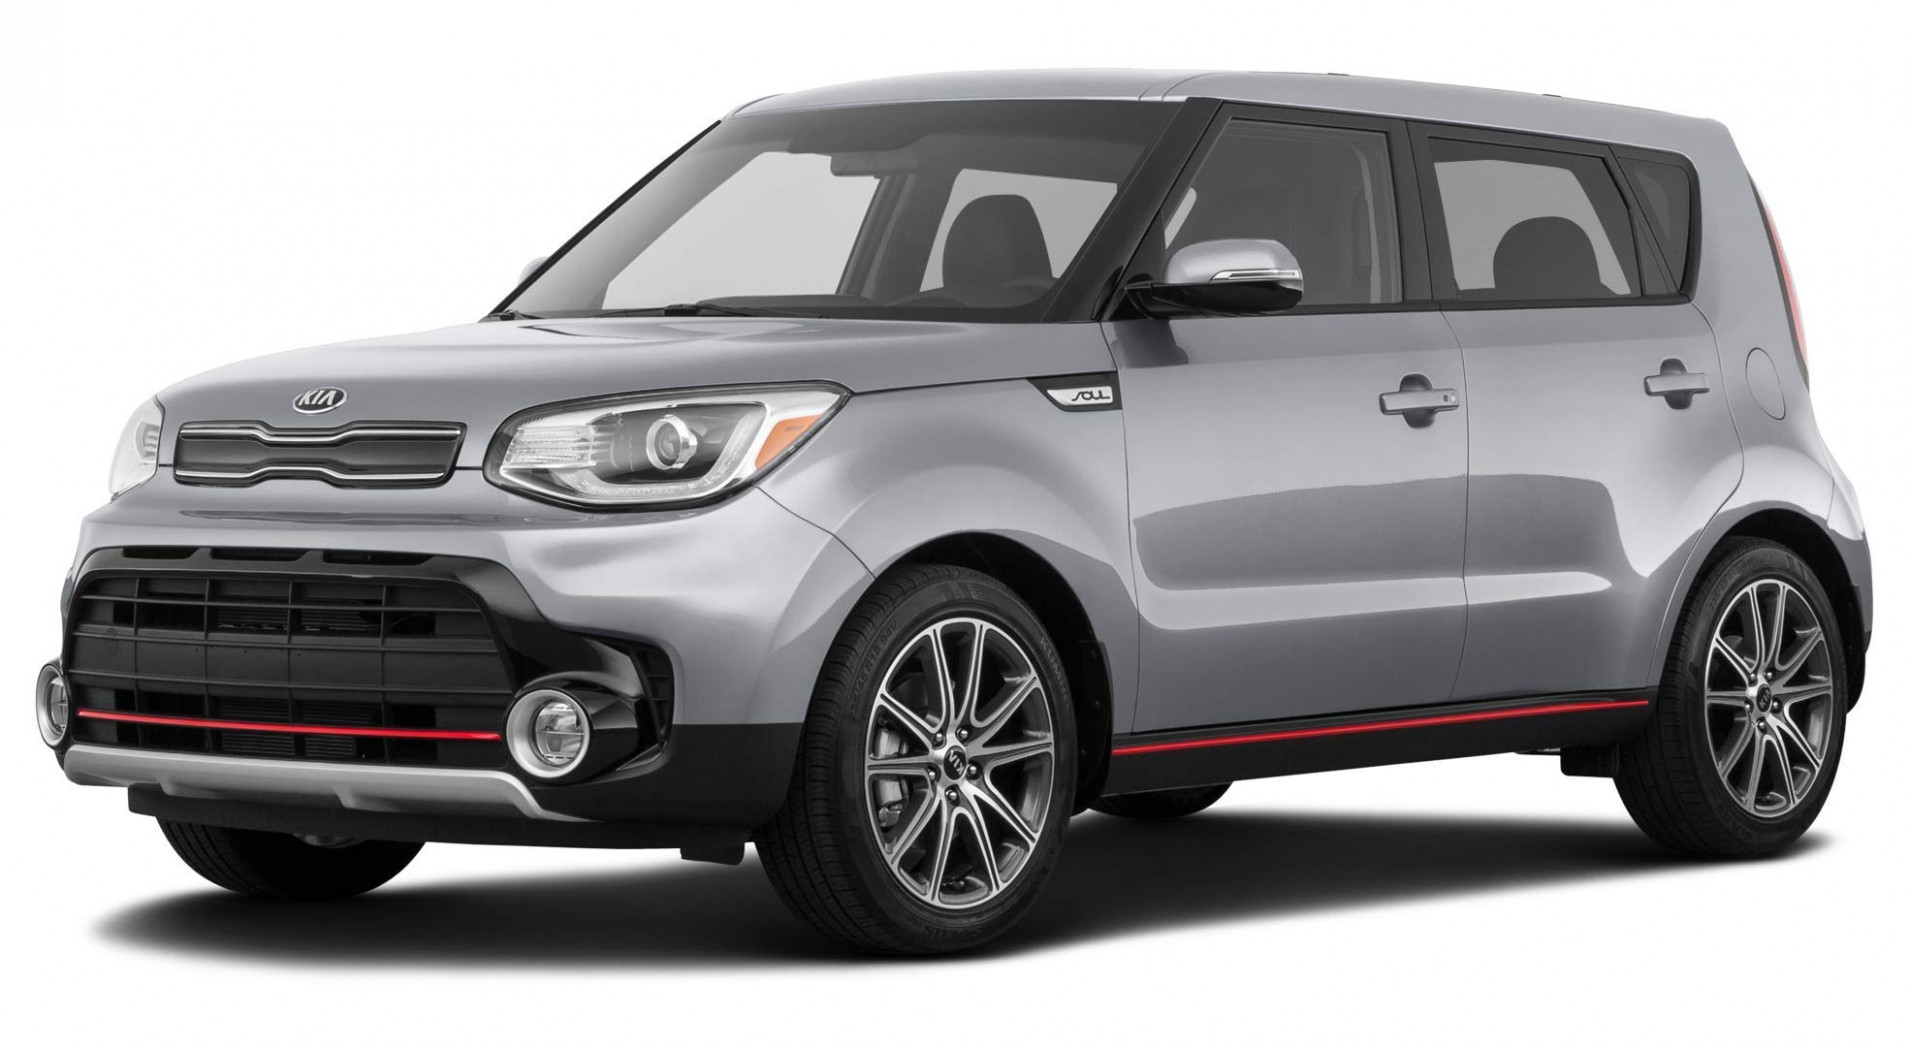 Redesign and Concept 2022 Kia Soul Lx